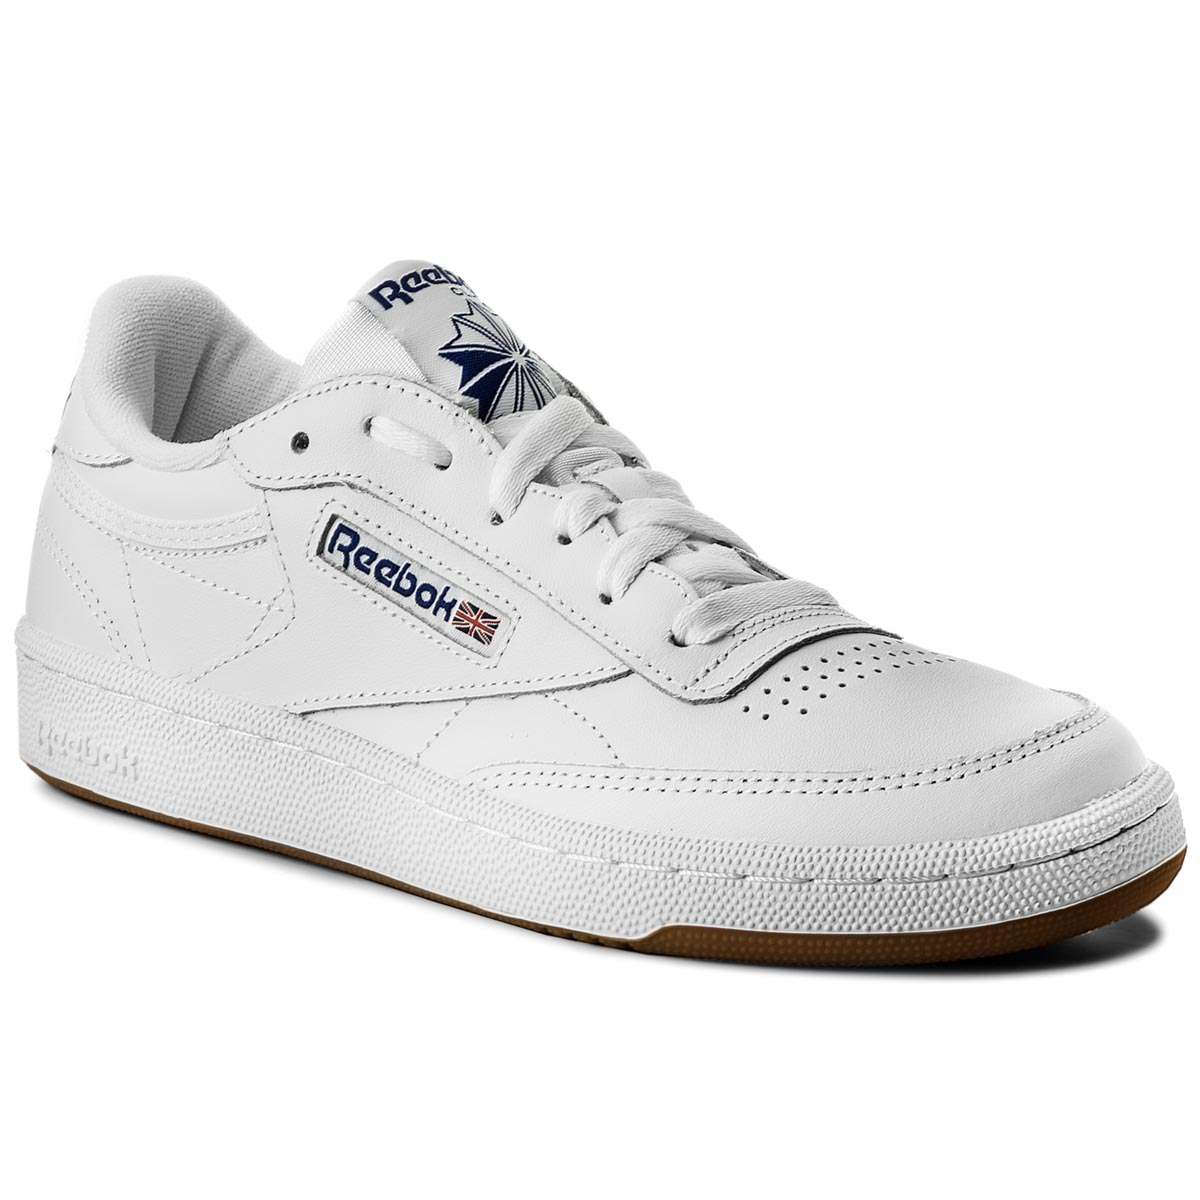 Image of Scarpe Reebok - Club C 85 AR0459 White/Royal/Gum